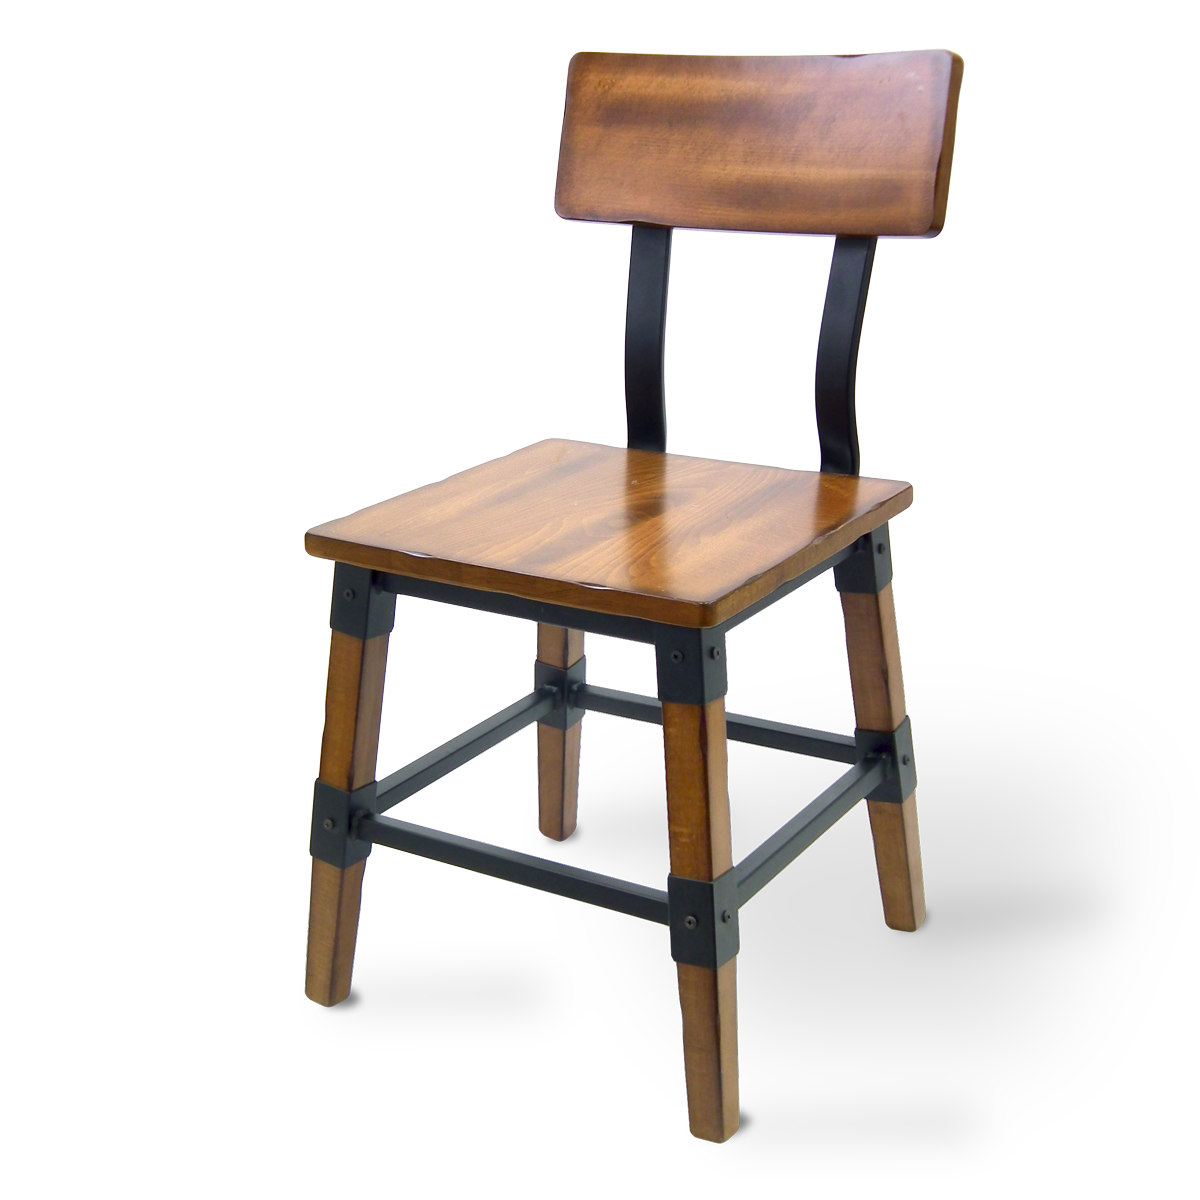 Rustic Wood and Steel Chair